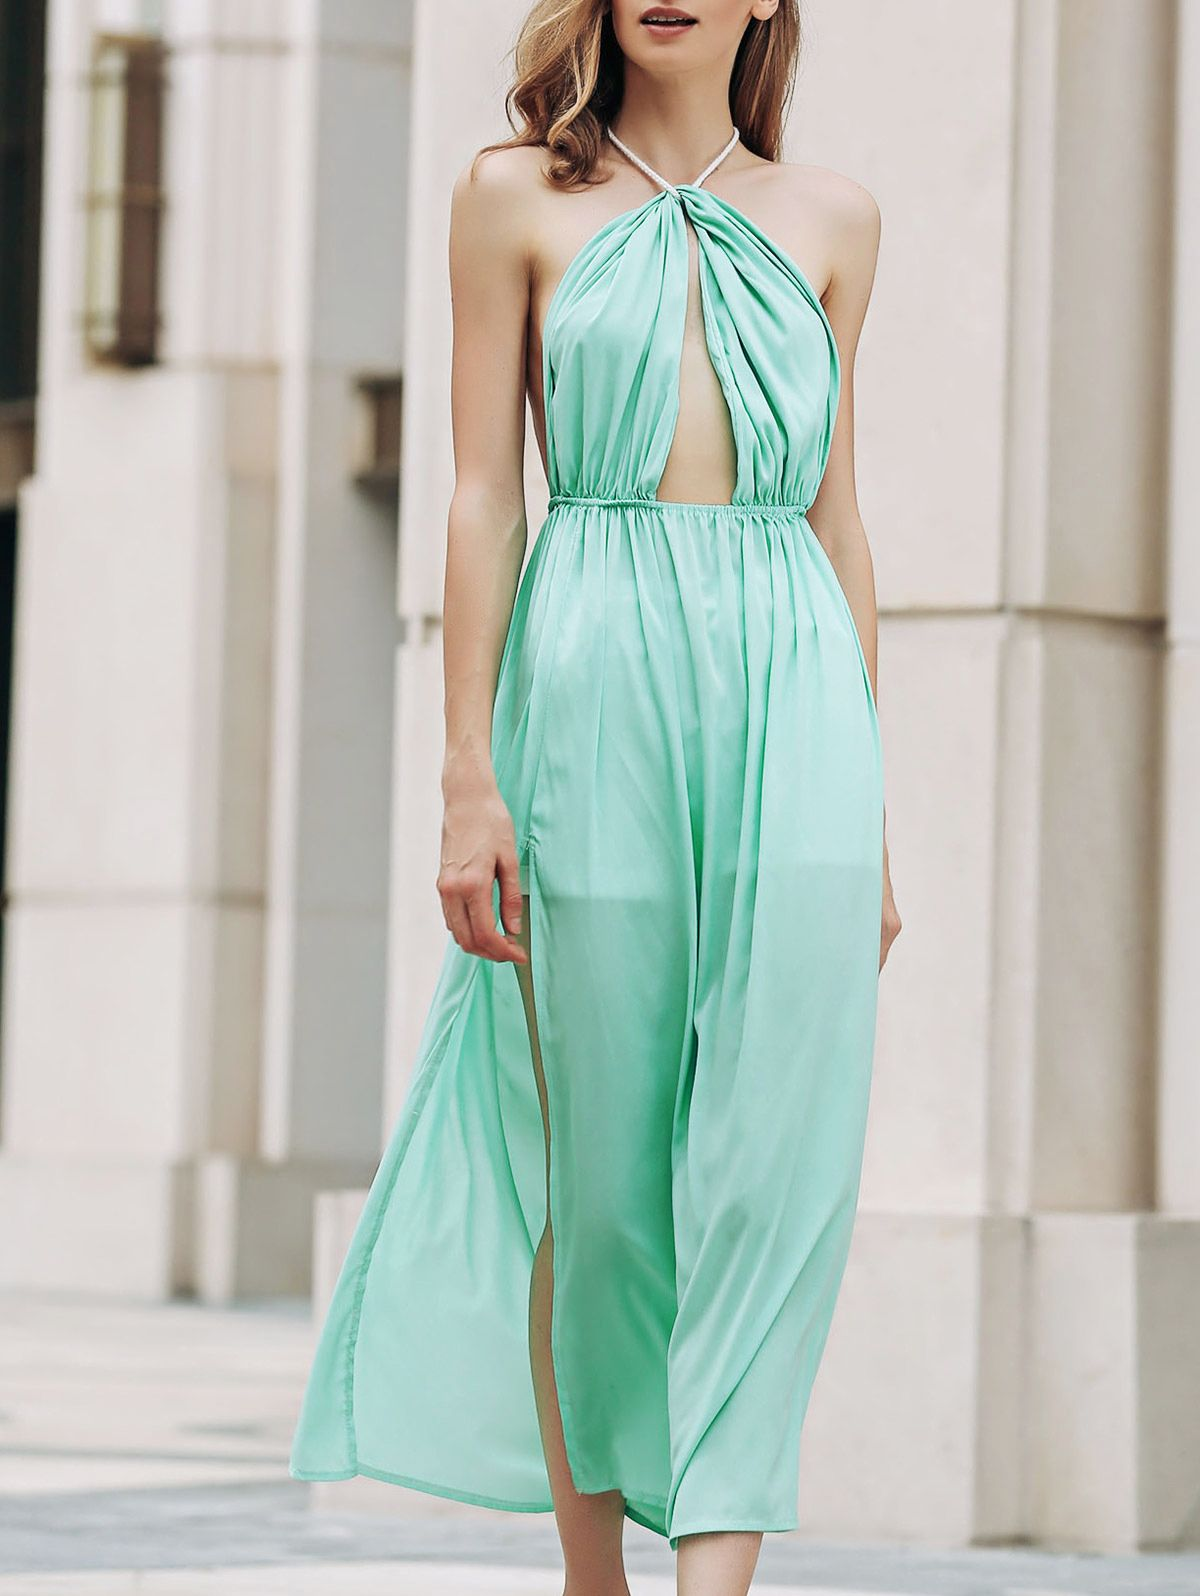 Backless halter cut out high slit long dress maxi dresses green